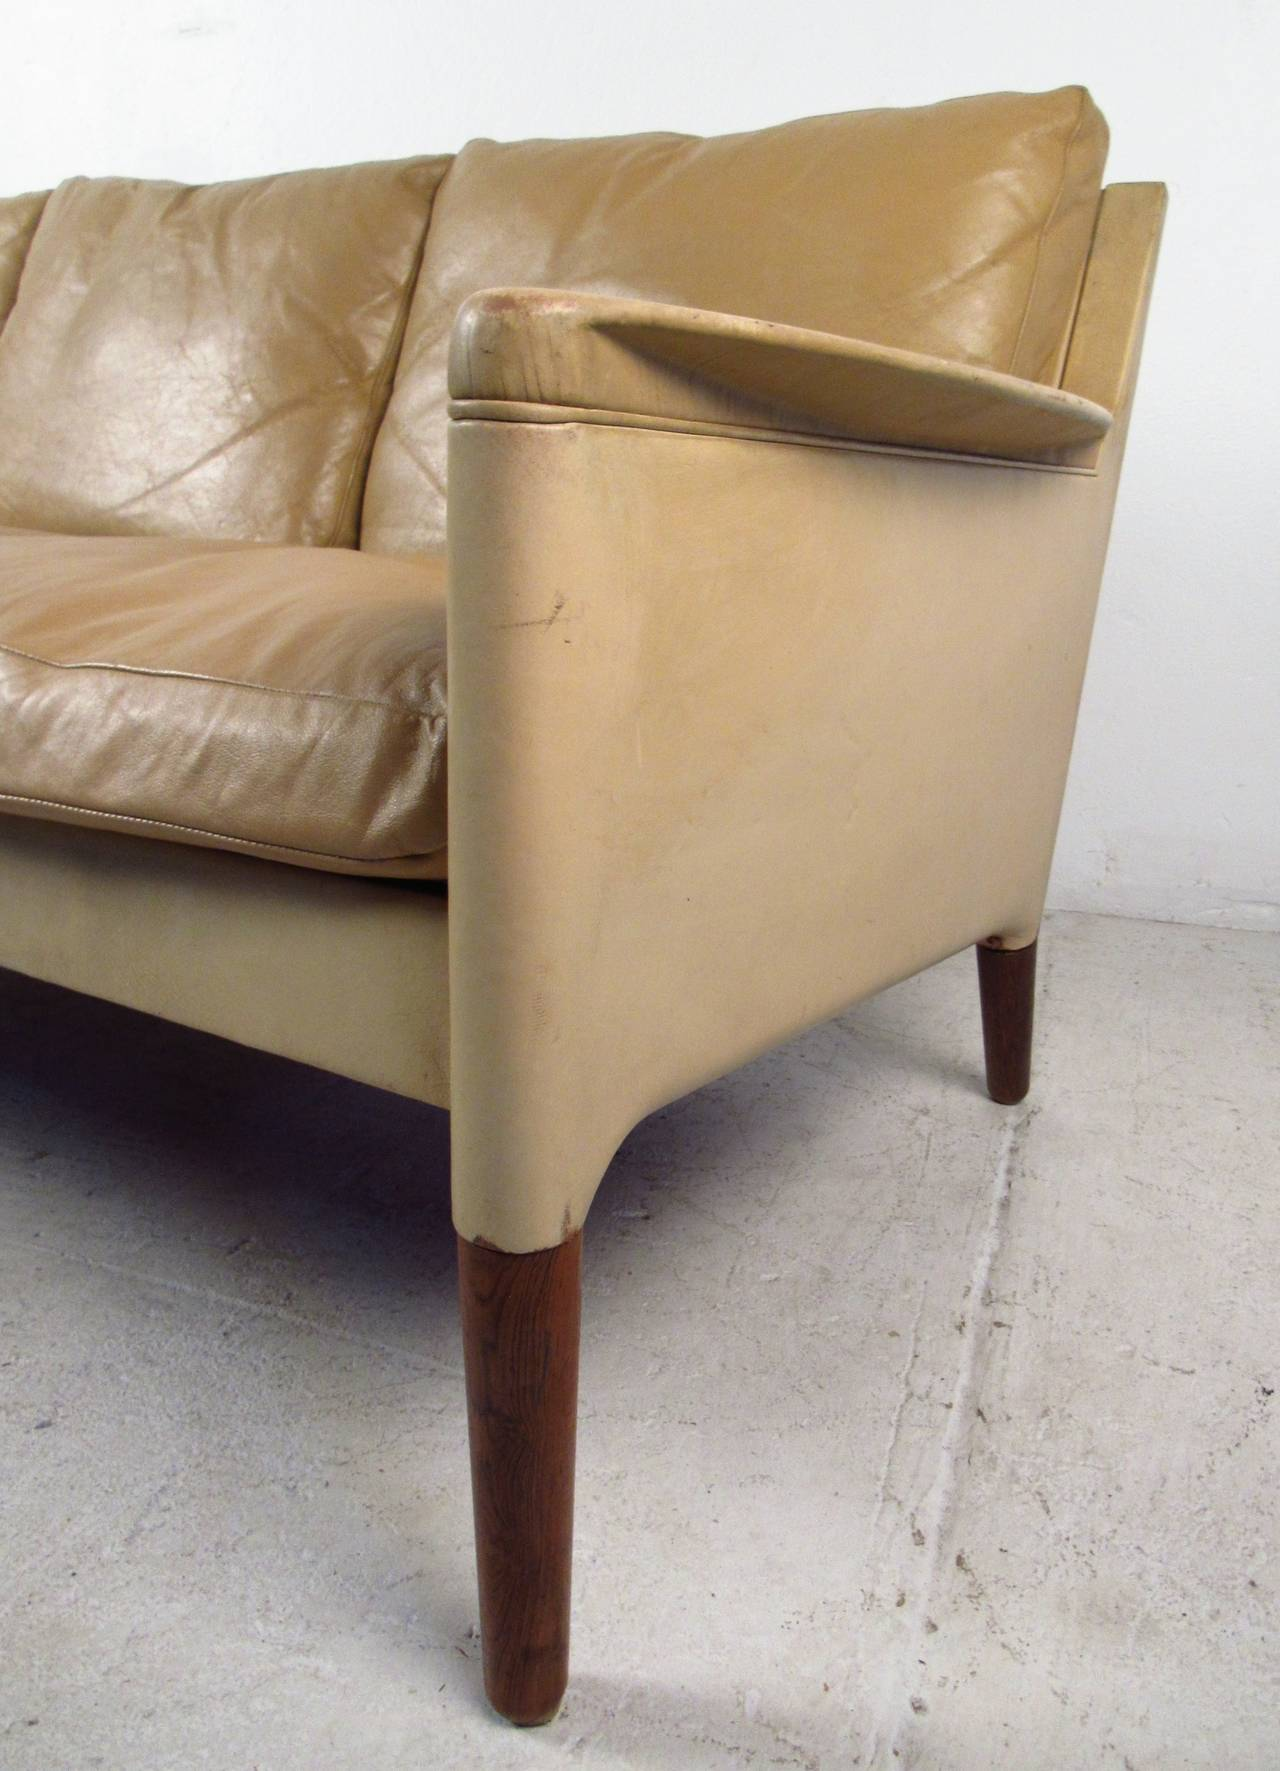 Vintage Danish Leather Sofa In Good Condition For Sale In Brooklyn, NY